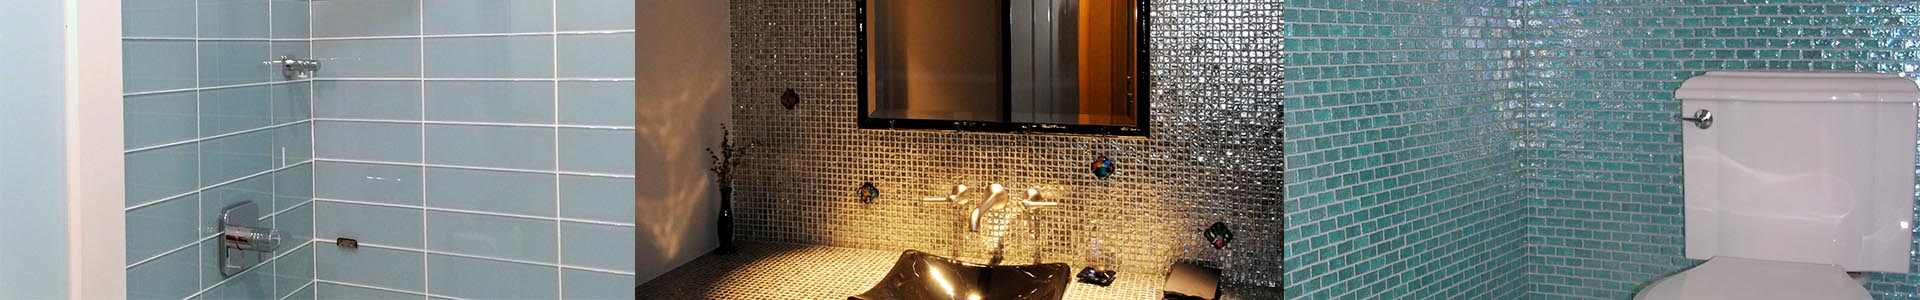 Boutique style glass tile available at Caputo Design Stone & Tile in Raleigh, NC